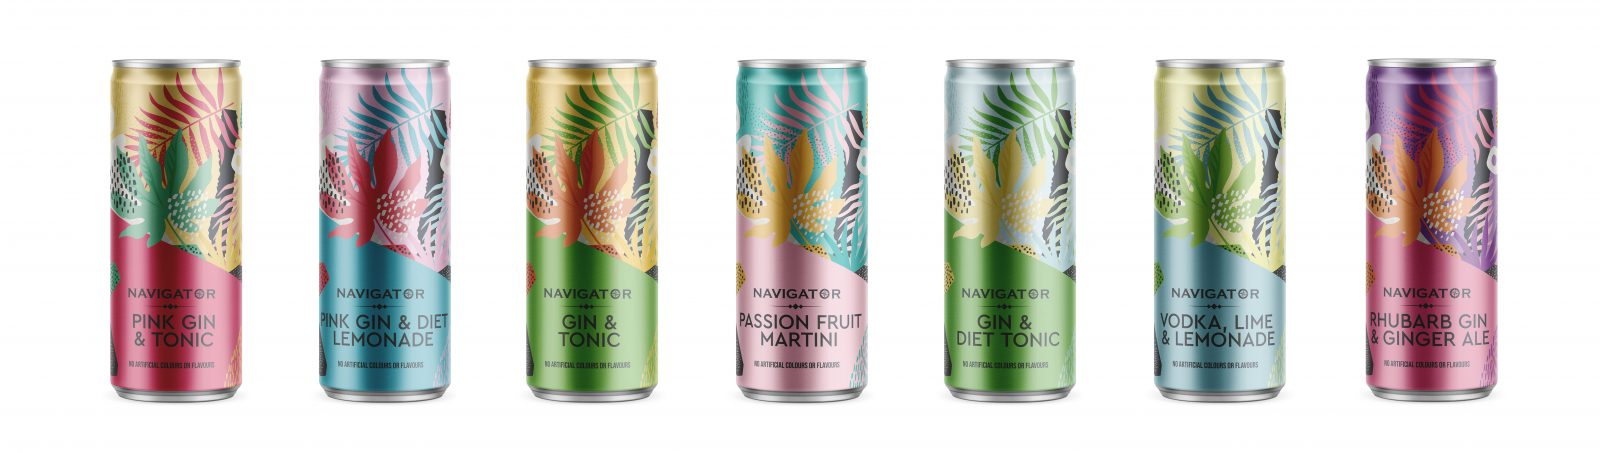 Manchester Drinks has launched summer cocktail multipack cans, The Manc